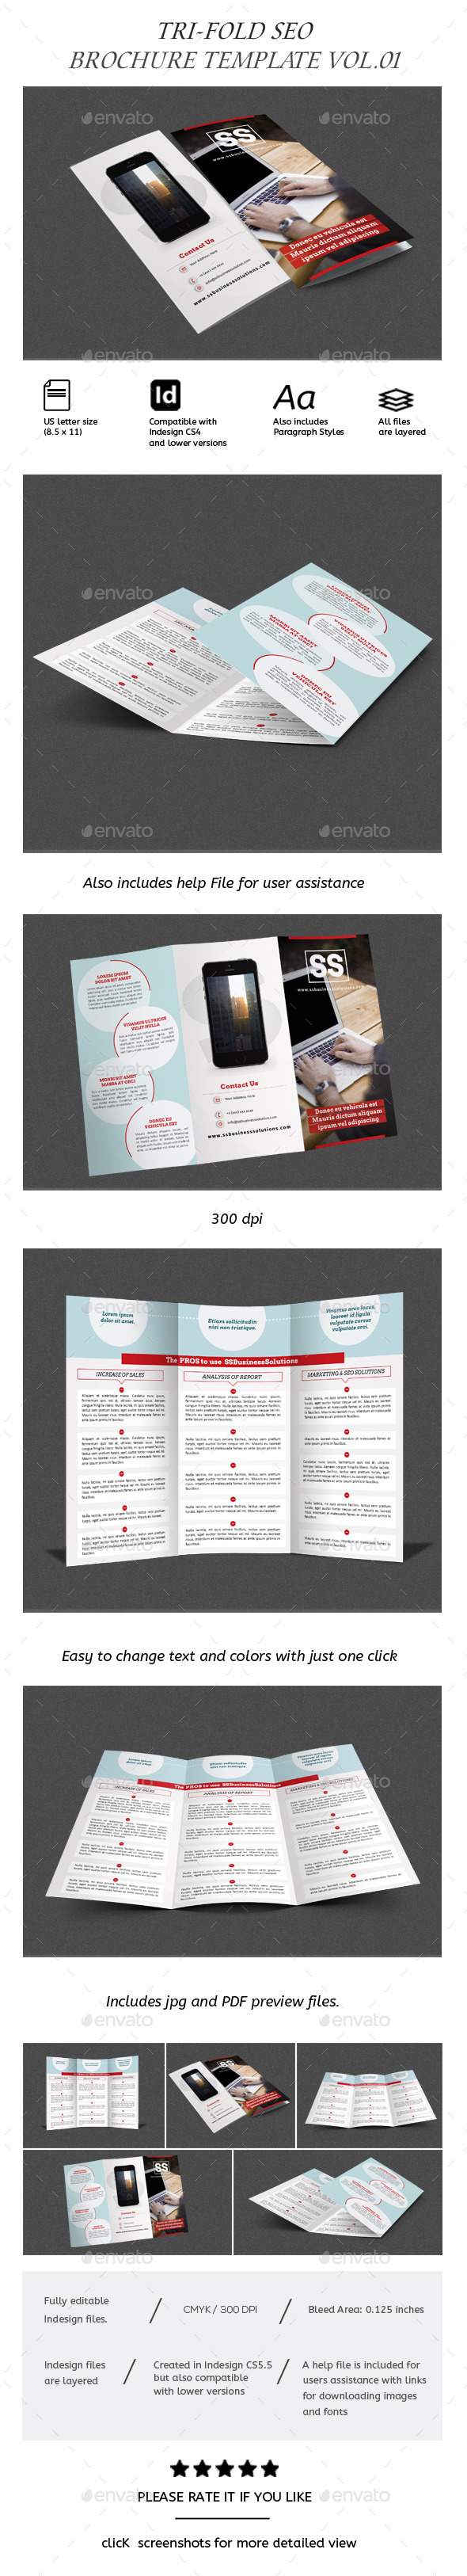 Business Trifold Brochure Vol-III - Corporate Brochures